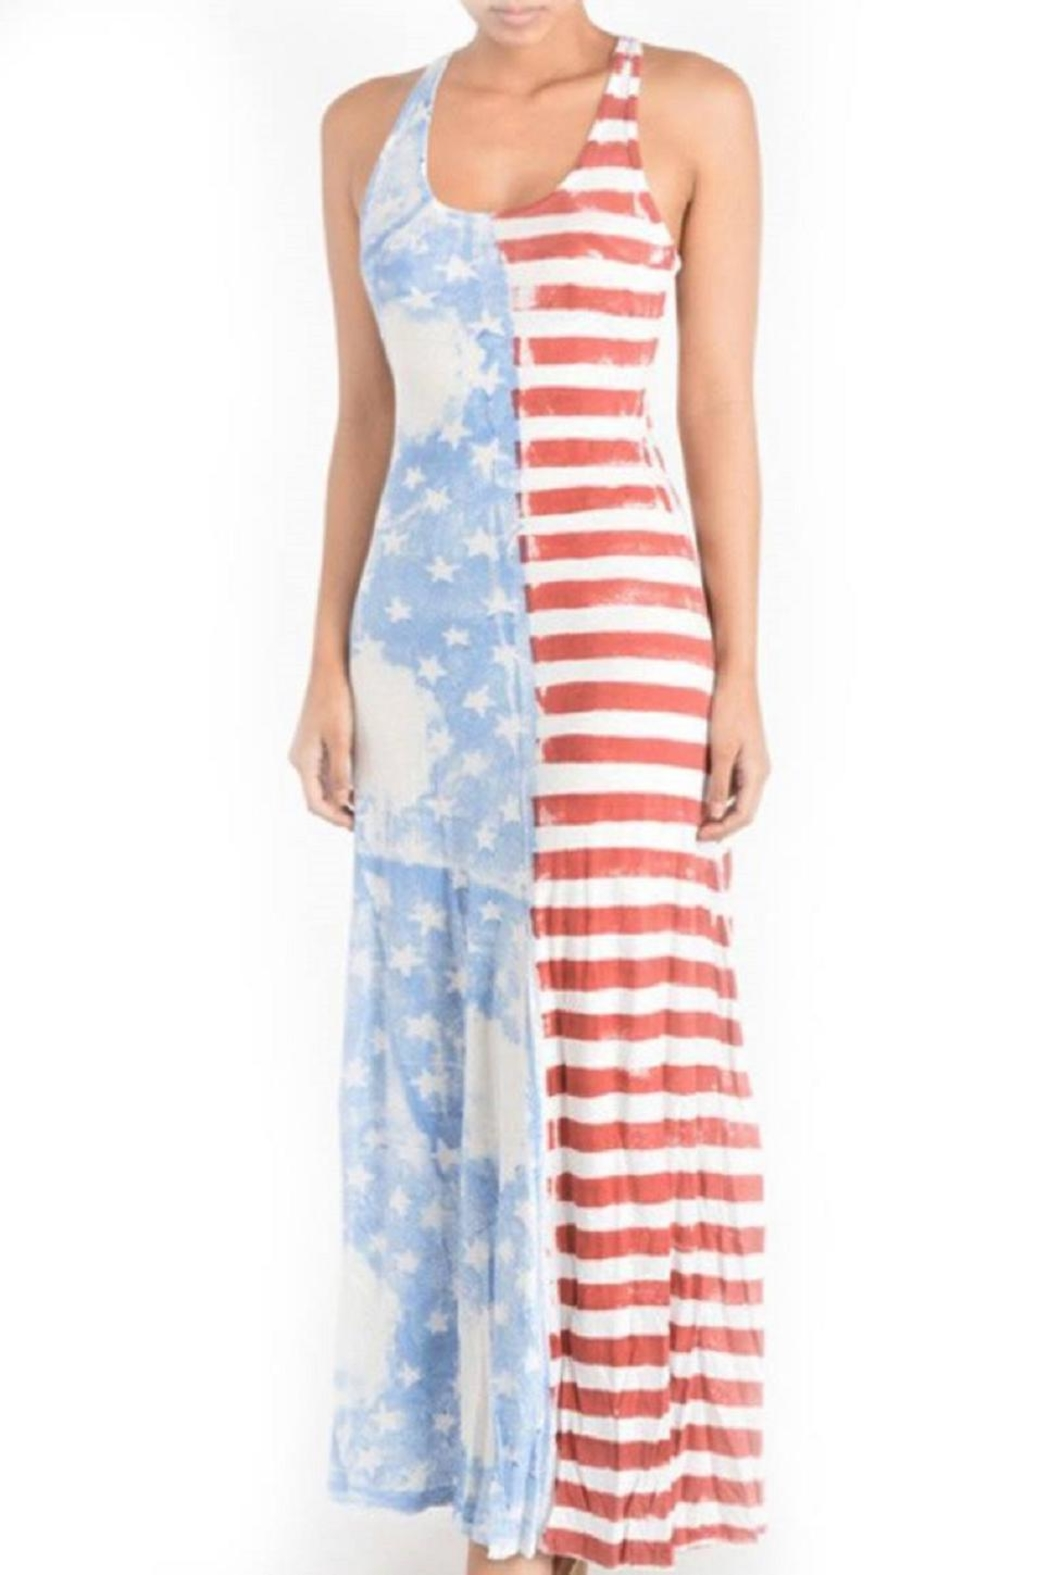 T-Party Fashion American Flag Dress from Georgia by Posh Clothing ...